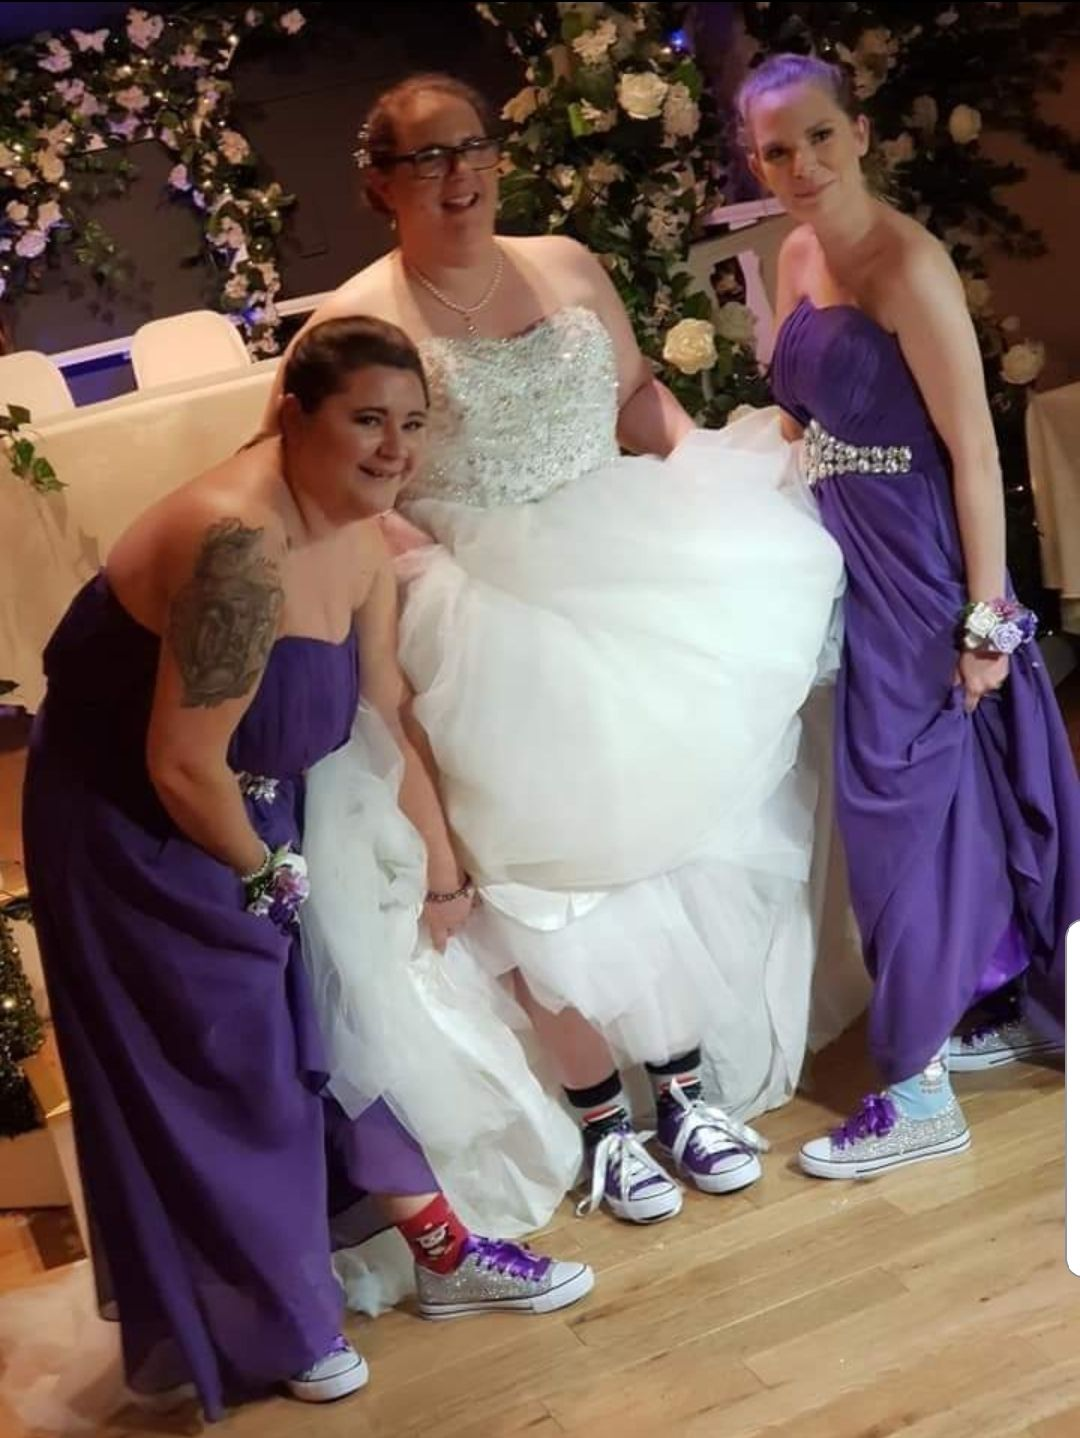 Purple and silver wedding theme, purple and silver glitter pumps, custom converse